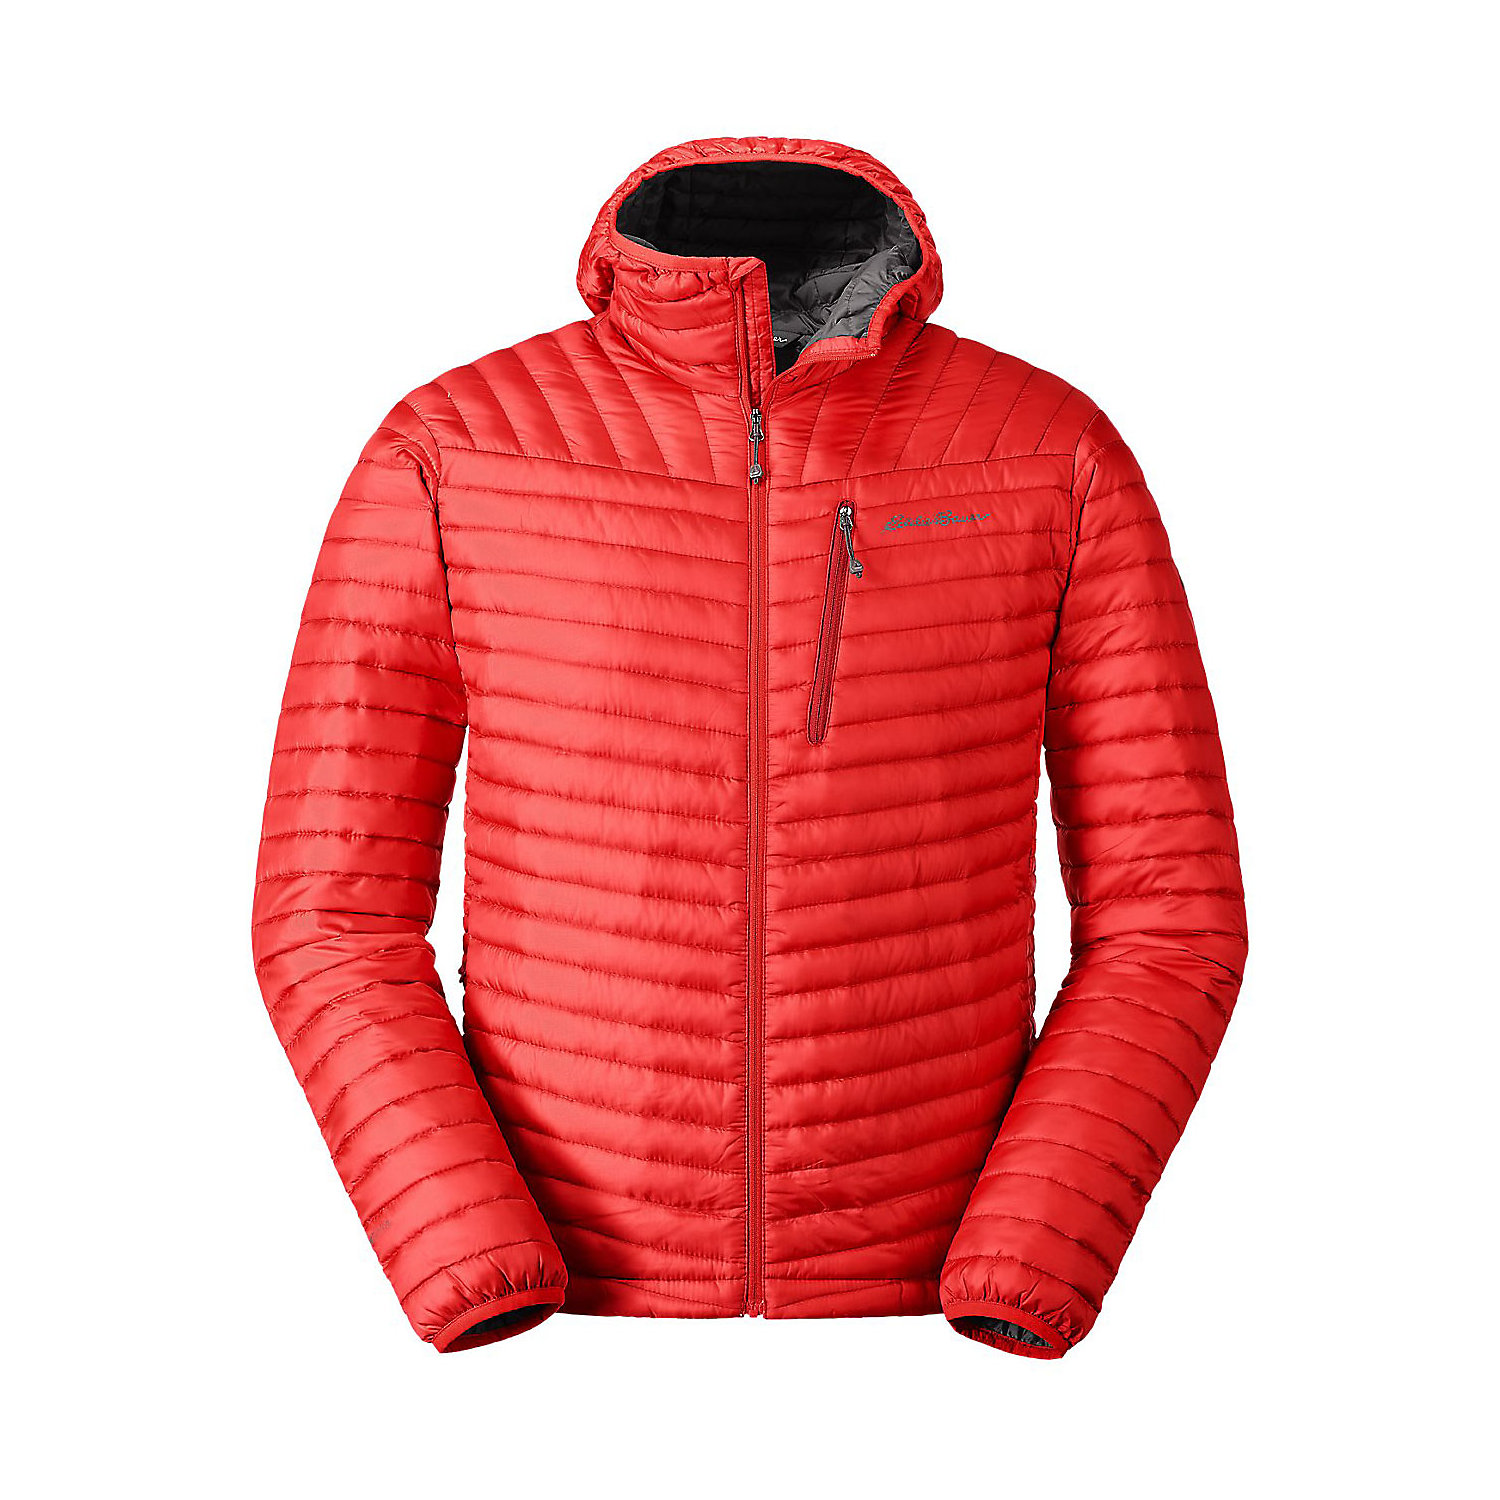 ad93c2679244 Eddie Bauer First Ascent Men s Microtherm 2.0 Stormdown Hooded Jacket